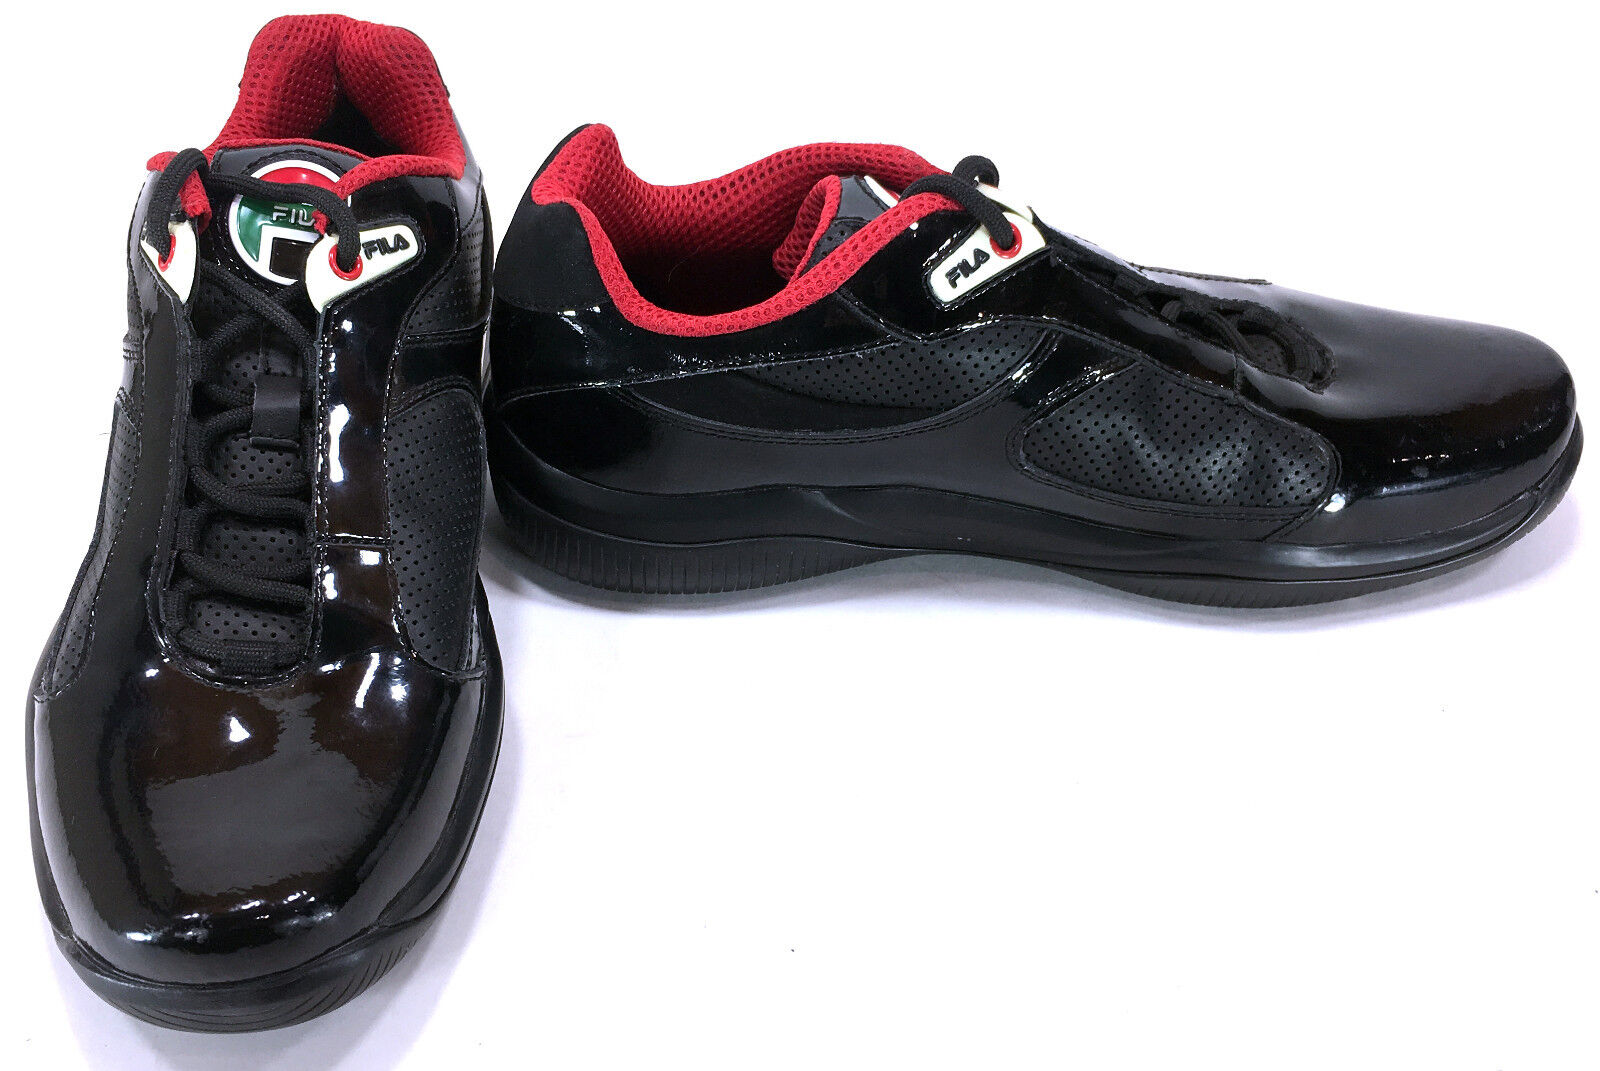 Fila Shoes Patent Leather Lo Athletic Trainer Black/Red Sneakers Mismatch 9/8.5 Brand discount